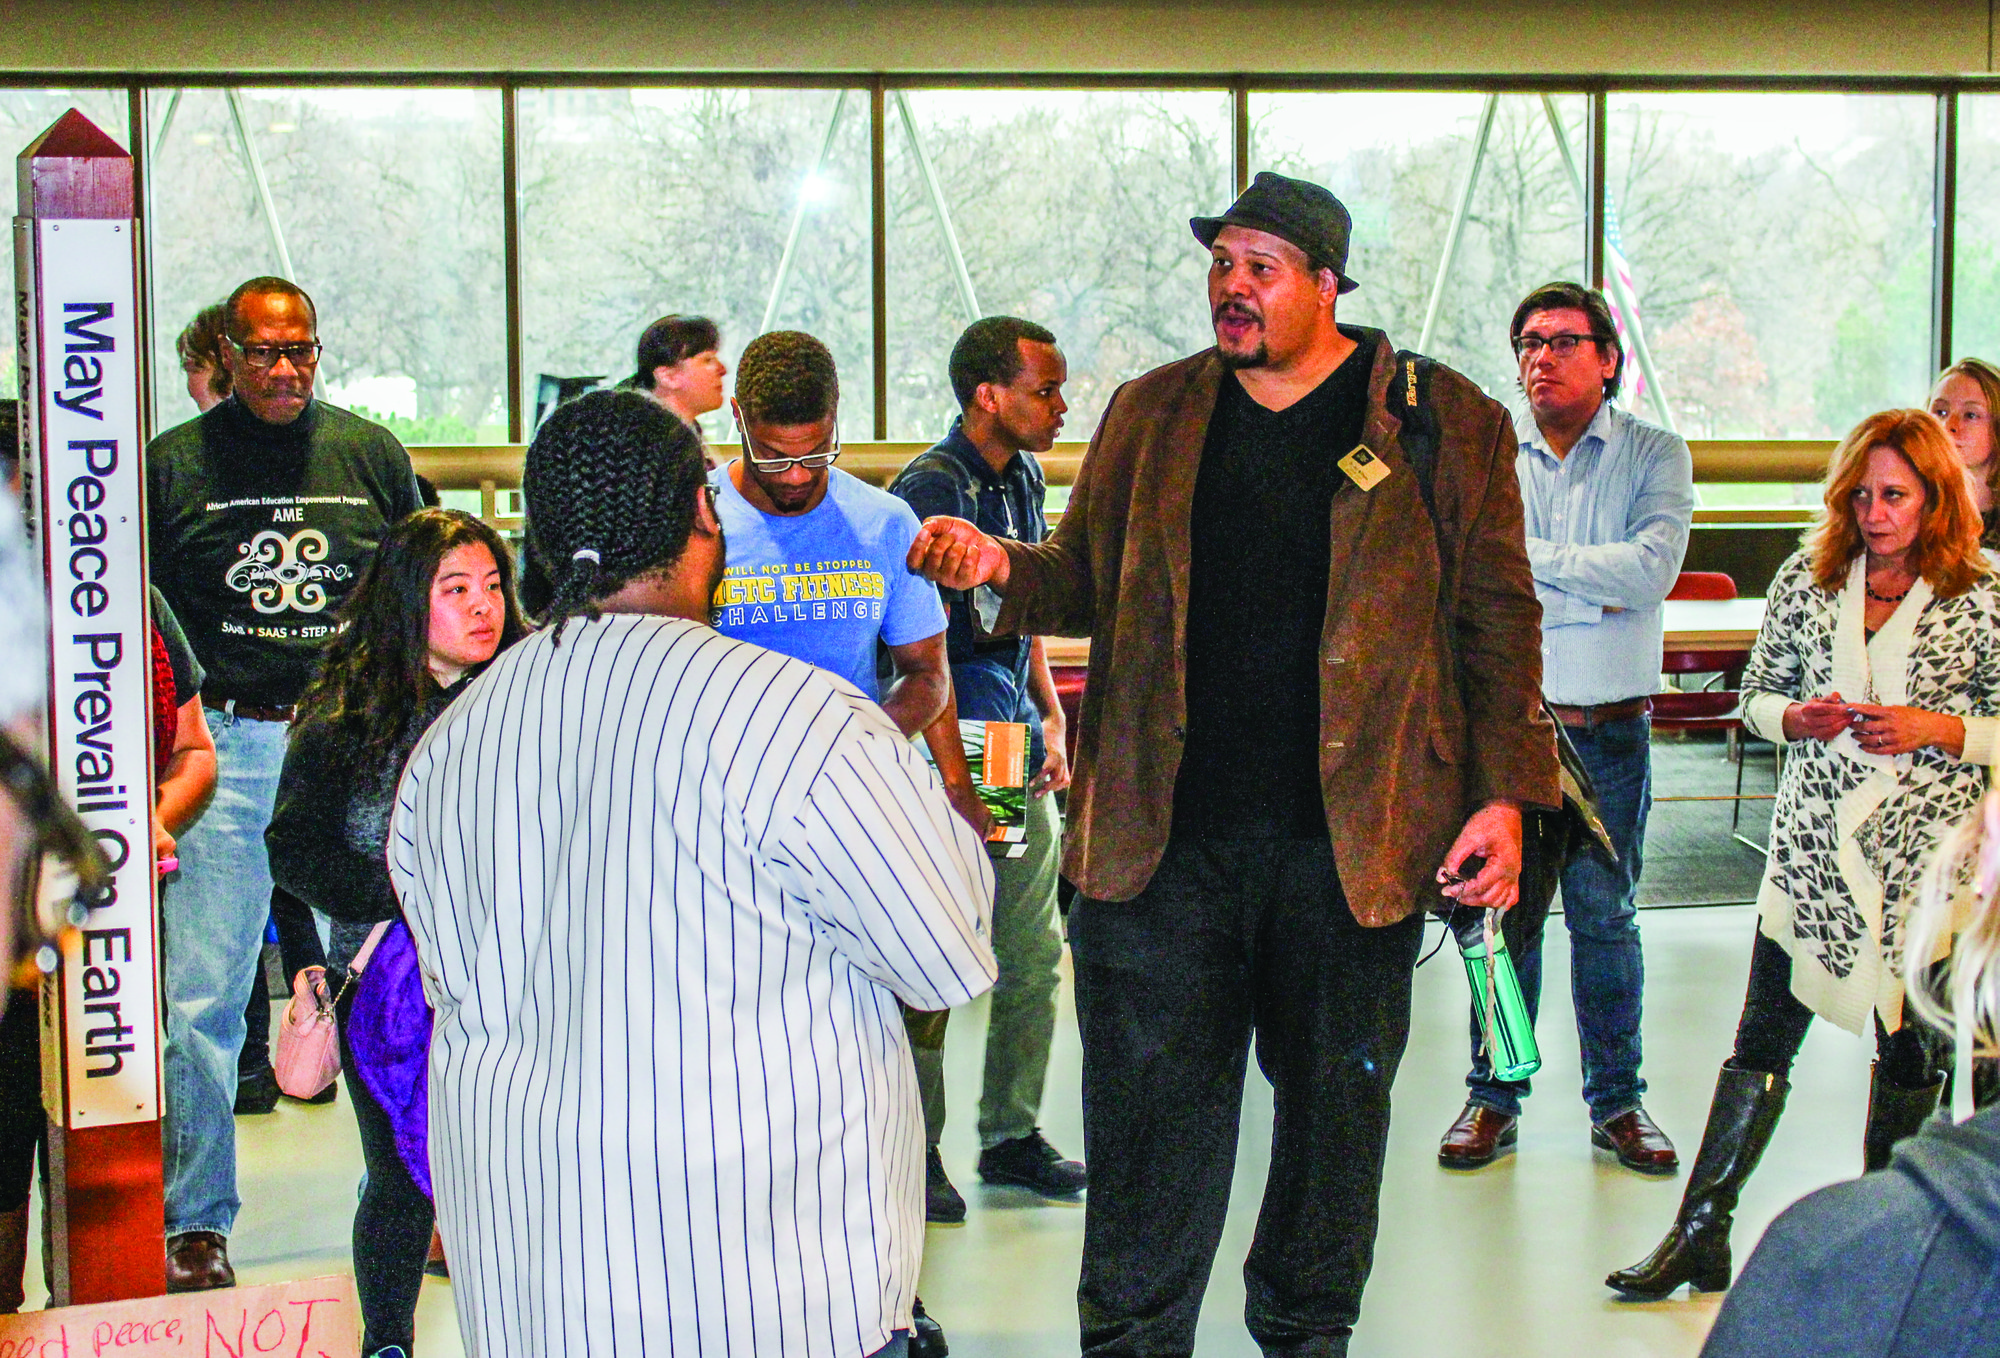 Administration struggles to respond to anonymous reports of hate speech on campus